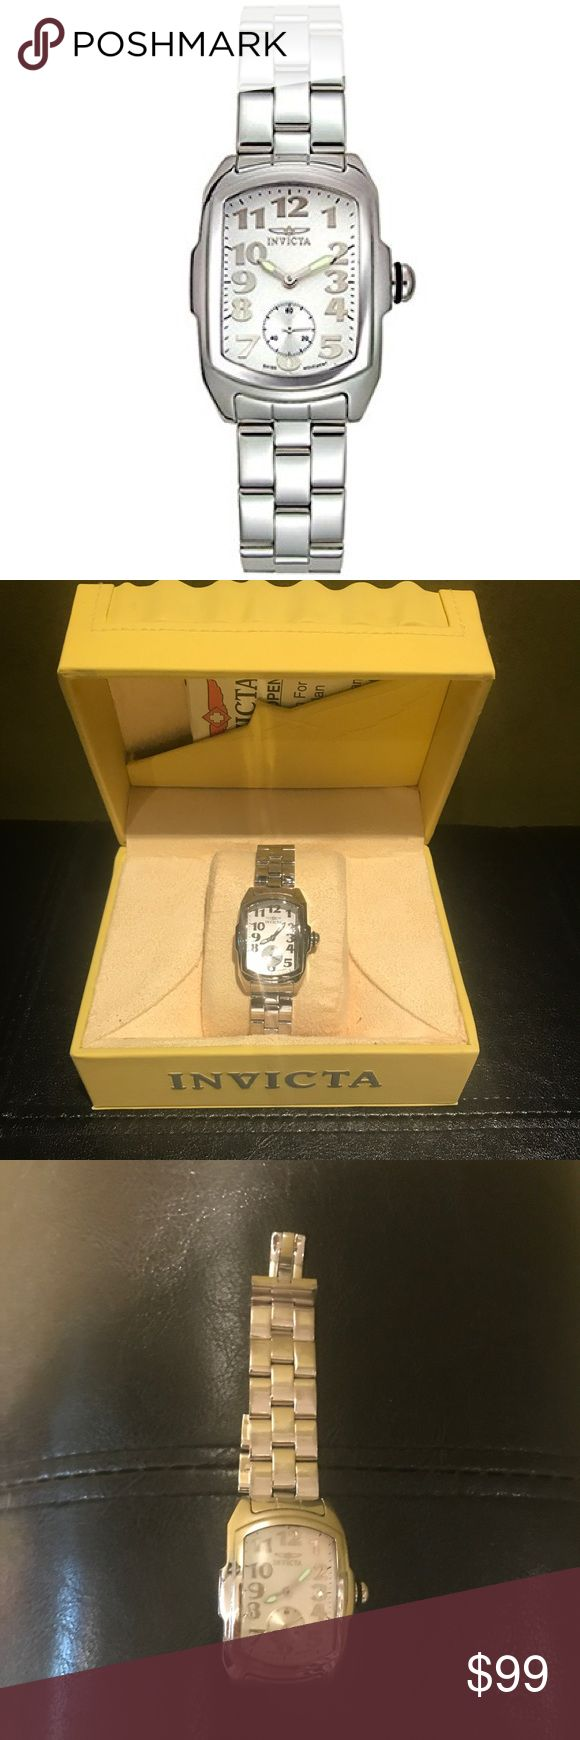 """Invicta Baby Lupah Ladies watch Good used condition. Baby Lupah model#2853 w/Stainless Steel link band w/invisible double lock clasp, mineral crystal, white dial w/tritnite luminous hands, second hand sub-dial, water resistant to 330 ft. Fits 6 - 6 1/4"""" wrist. Scuffs on band, more so on top half, some wear & lite scratches here & there. Glass face is great, no scuffs or scratches.  New battery as of 10/19/17.  *Box not included.   **1st pic not actual watch; for visual purposes. All other…"""